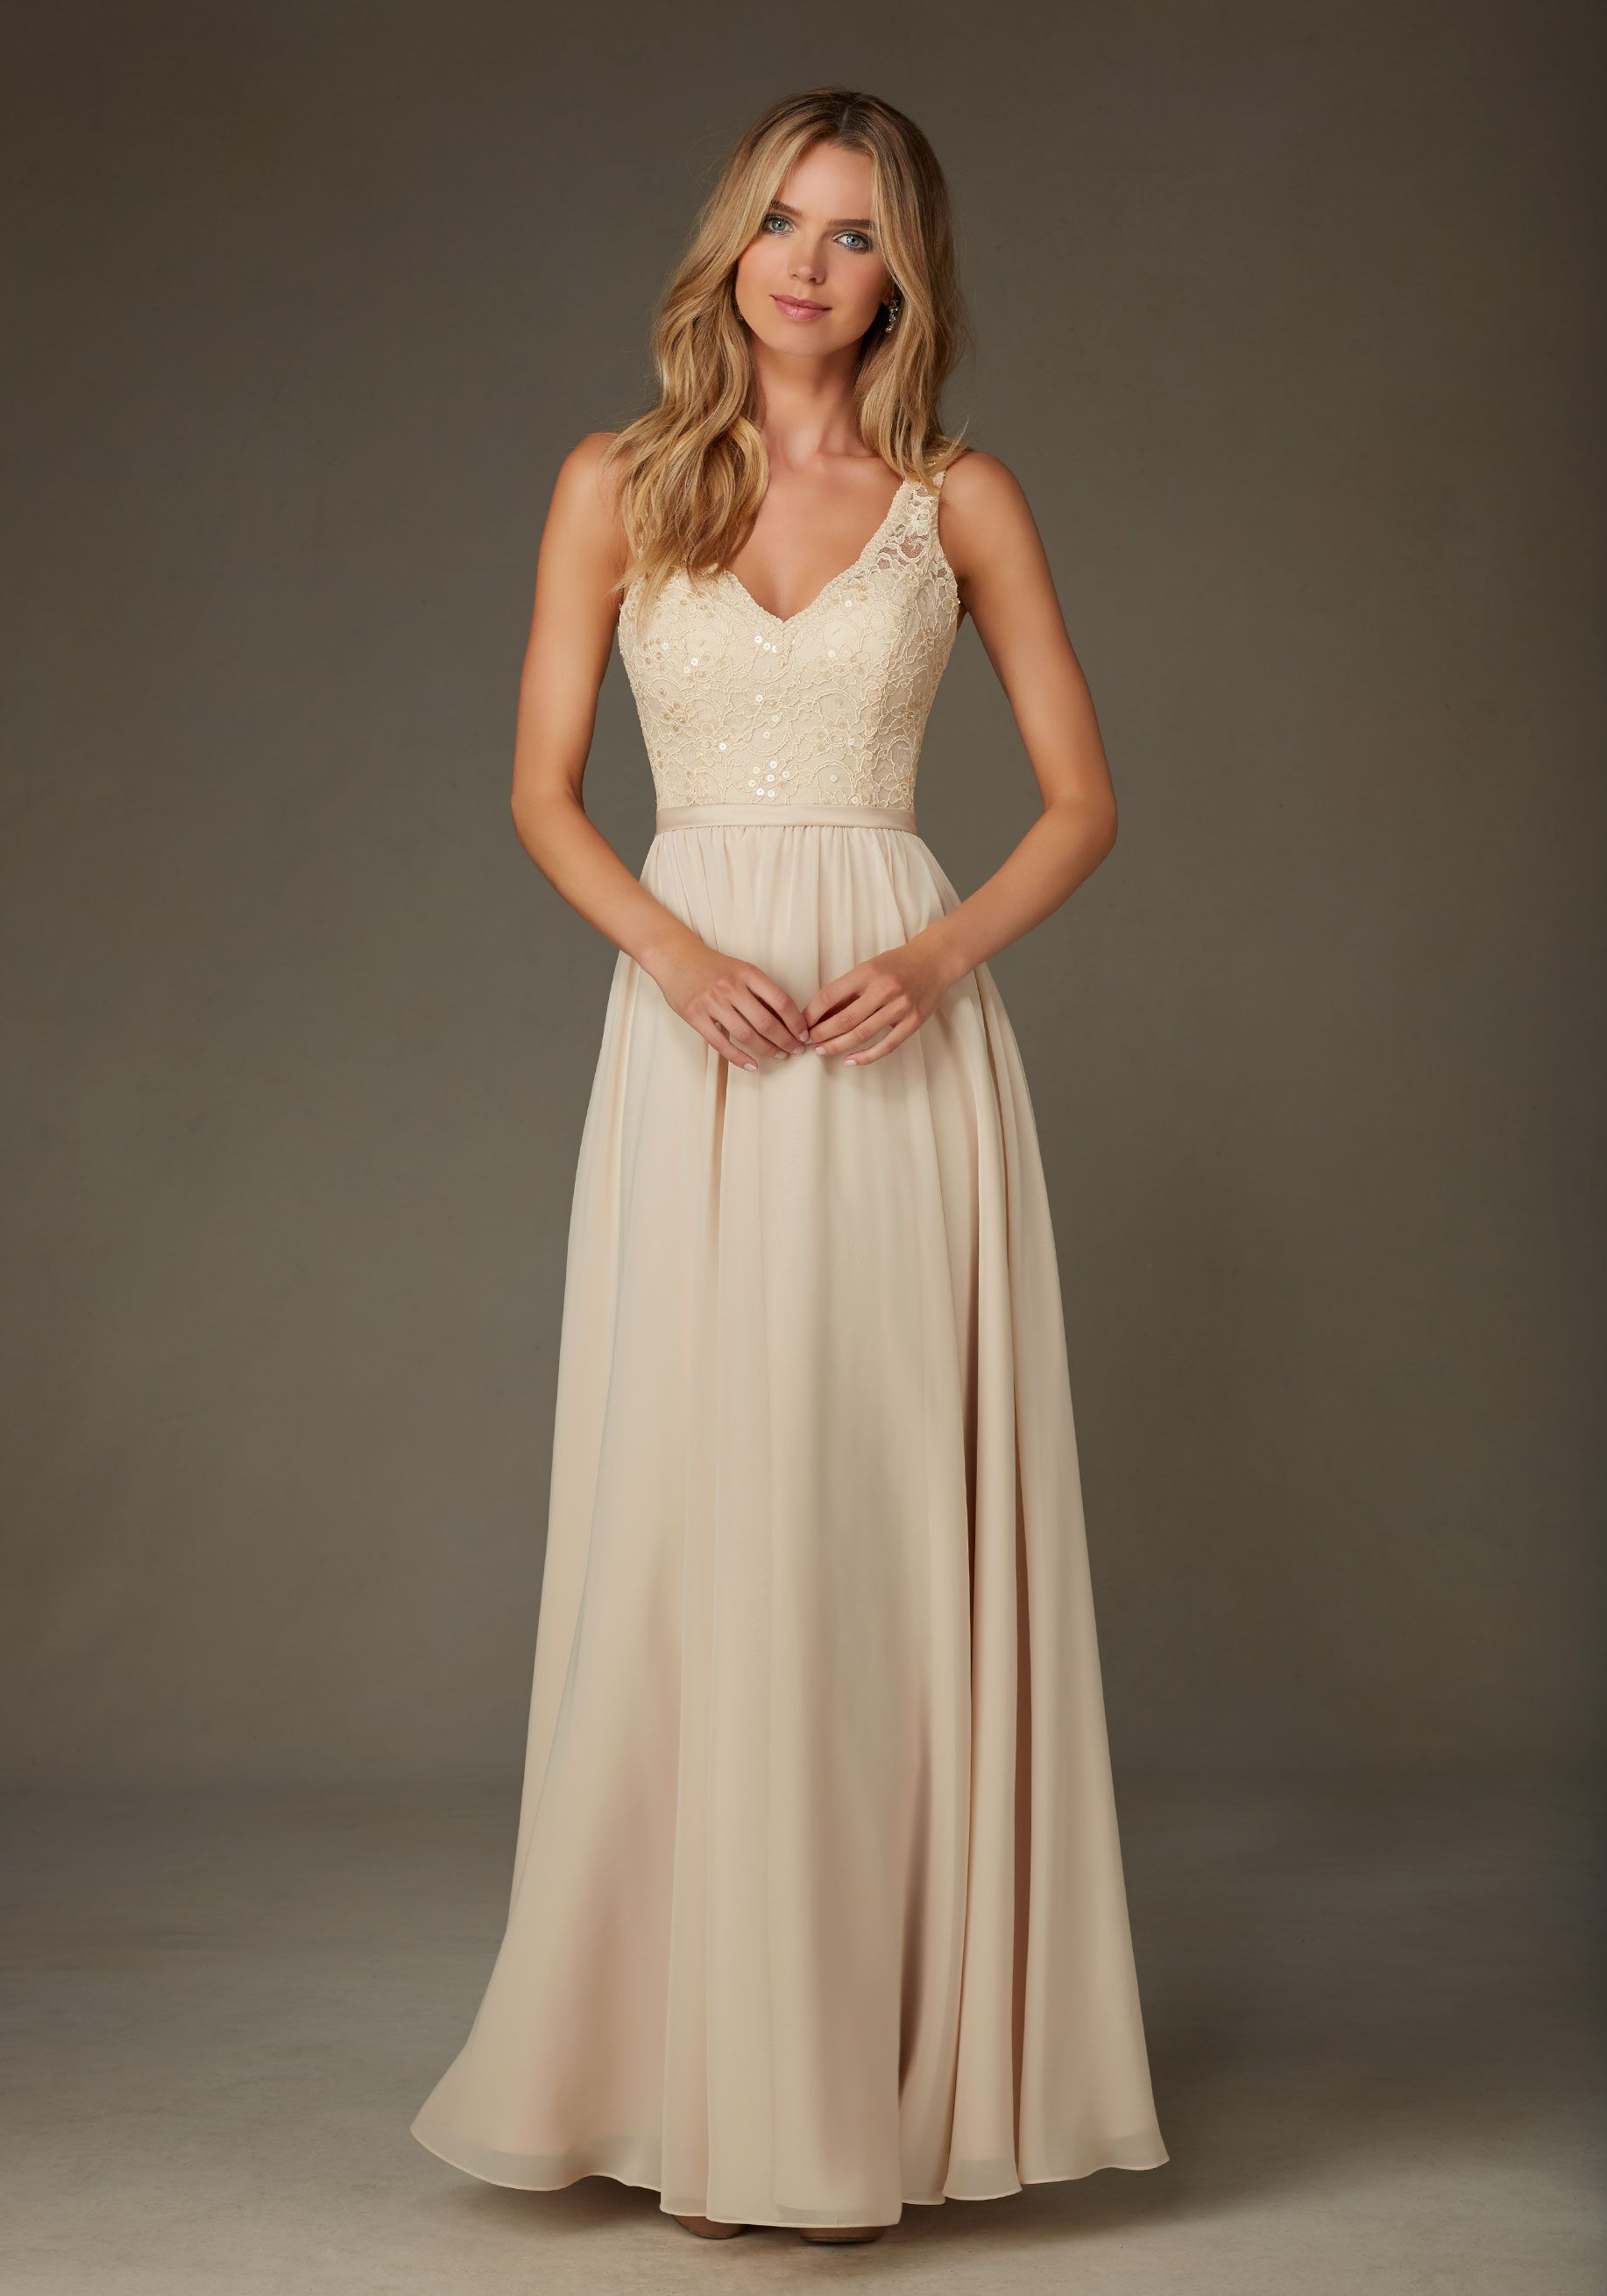 Romantic beaded lace with chiffon bridesmaid dress designed by romantic beaded lace with chiffon bridesmaid dress designed by madeline gardner shown in champagne ombrellifo Choice Image